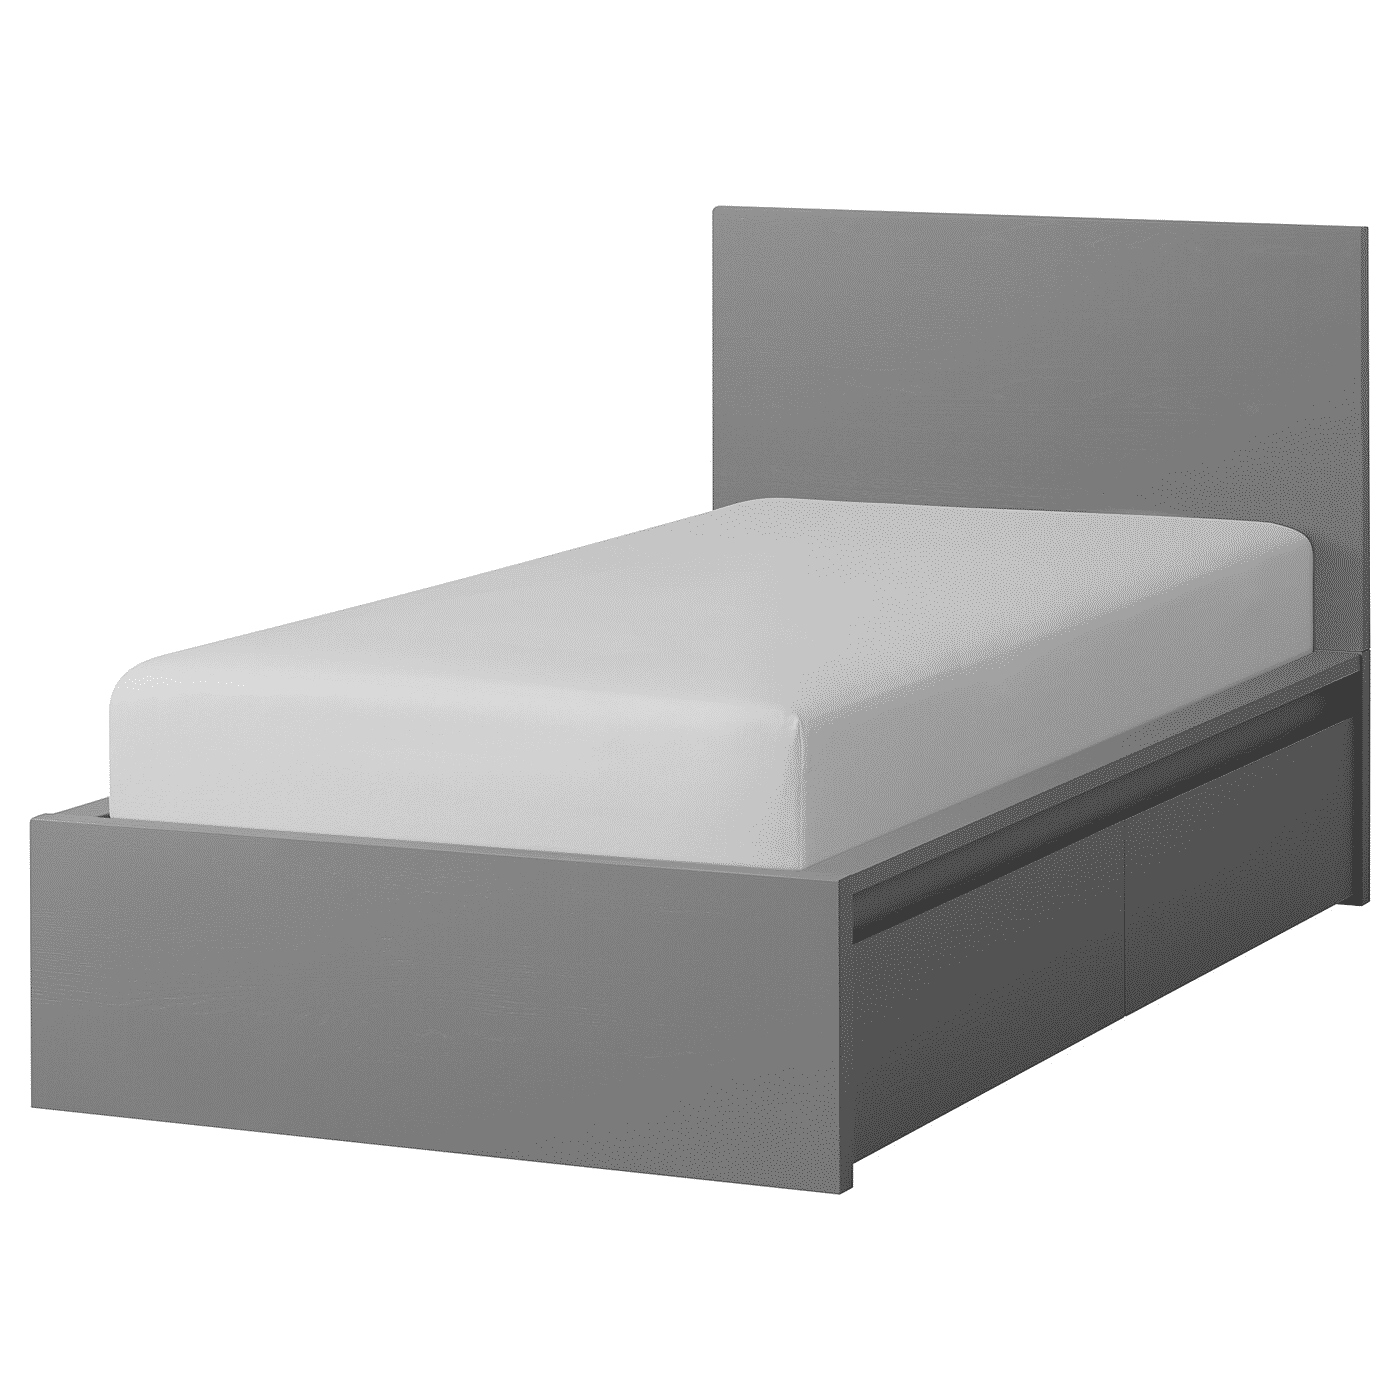 Malm High Bed Frame